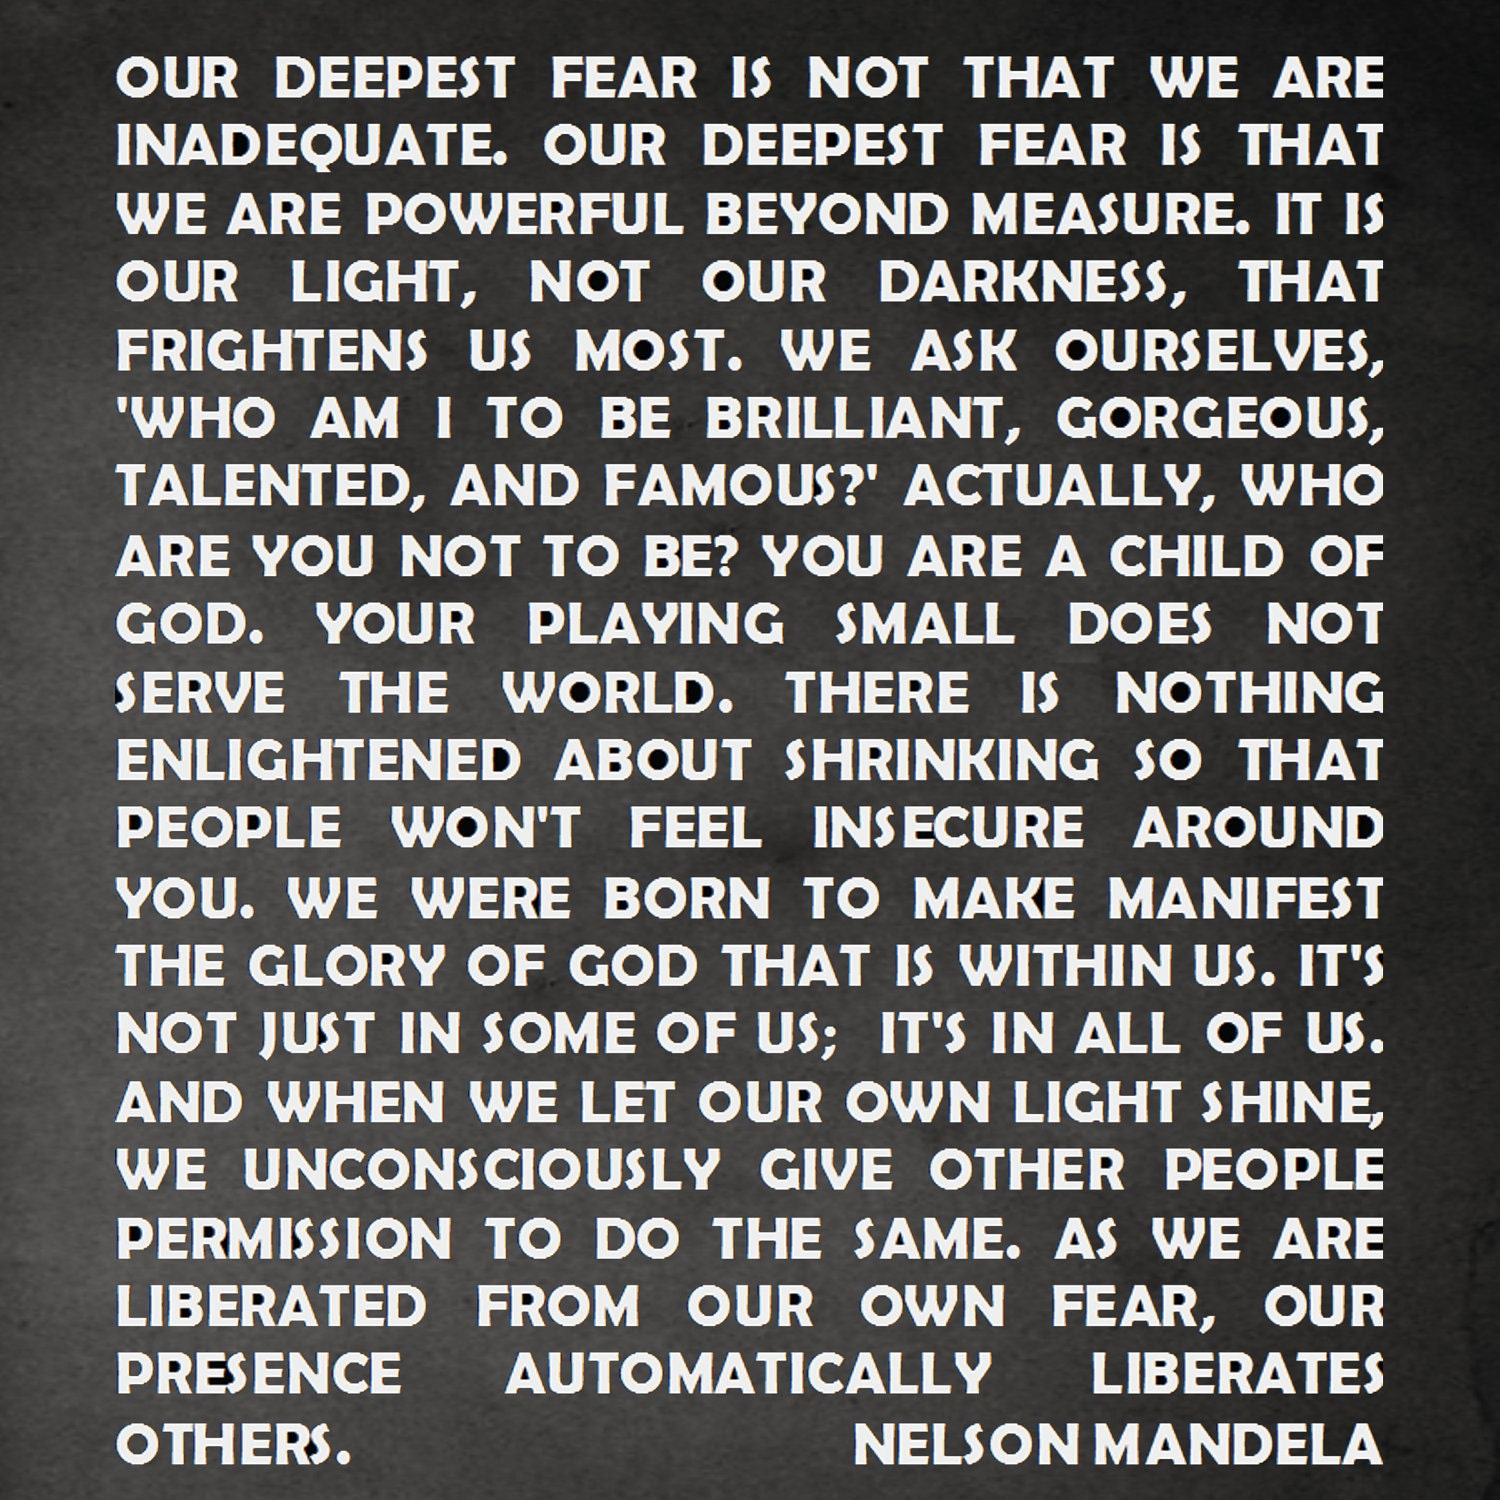 Mandela Quotes Our Deepest Fear Quotesgram